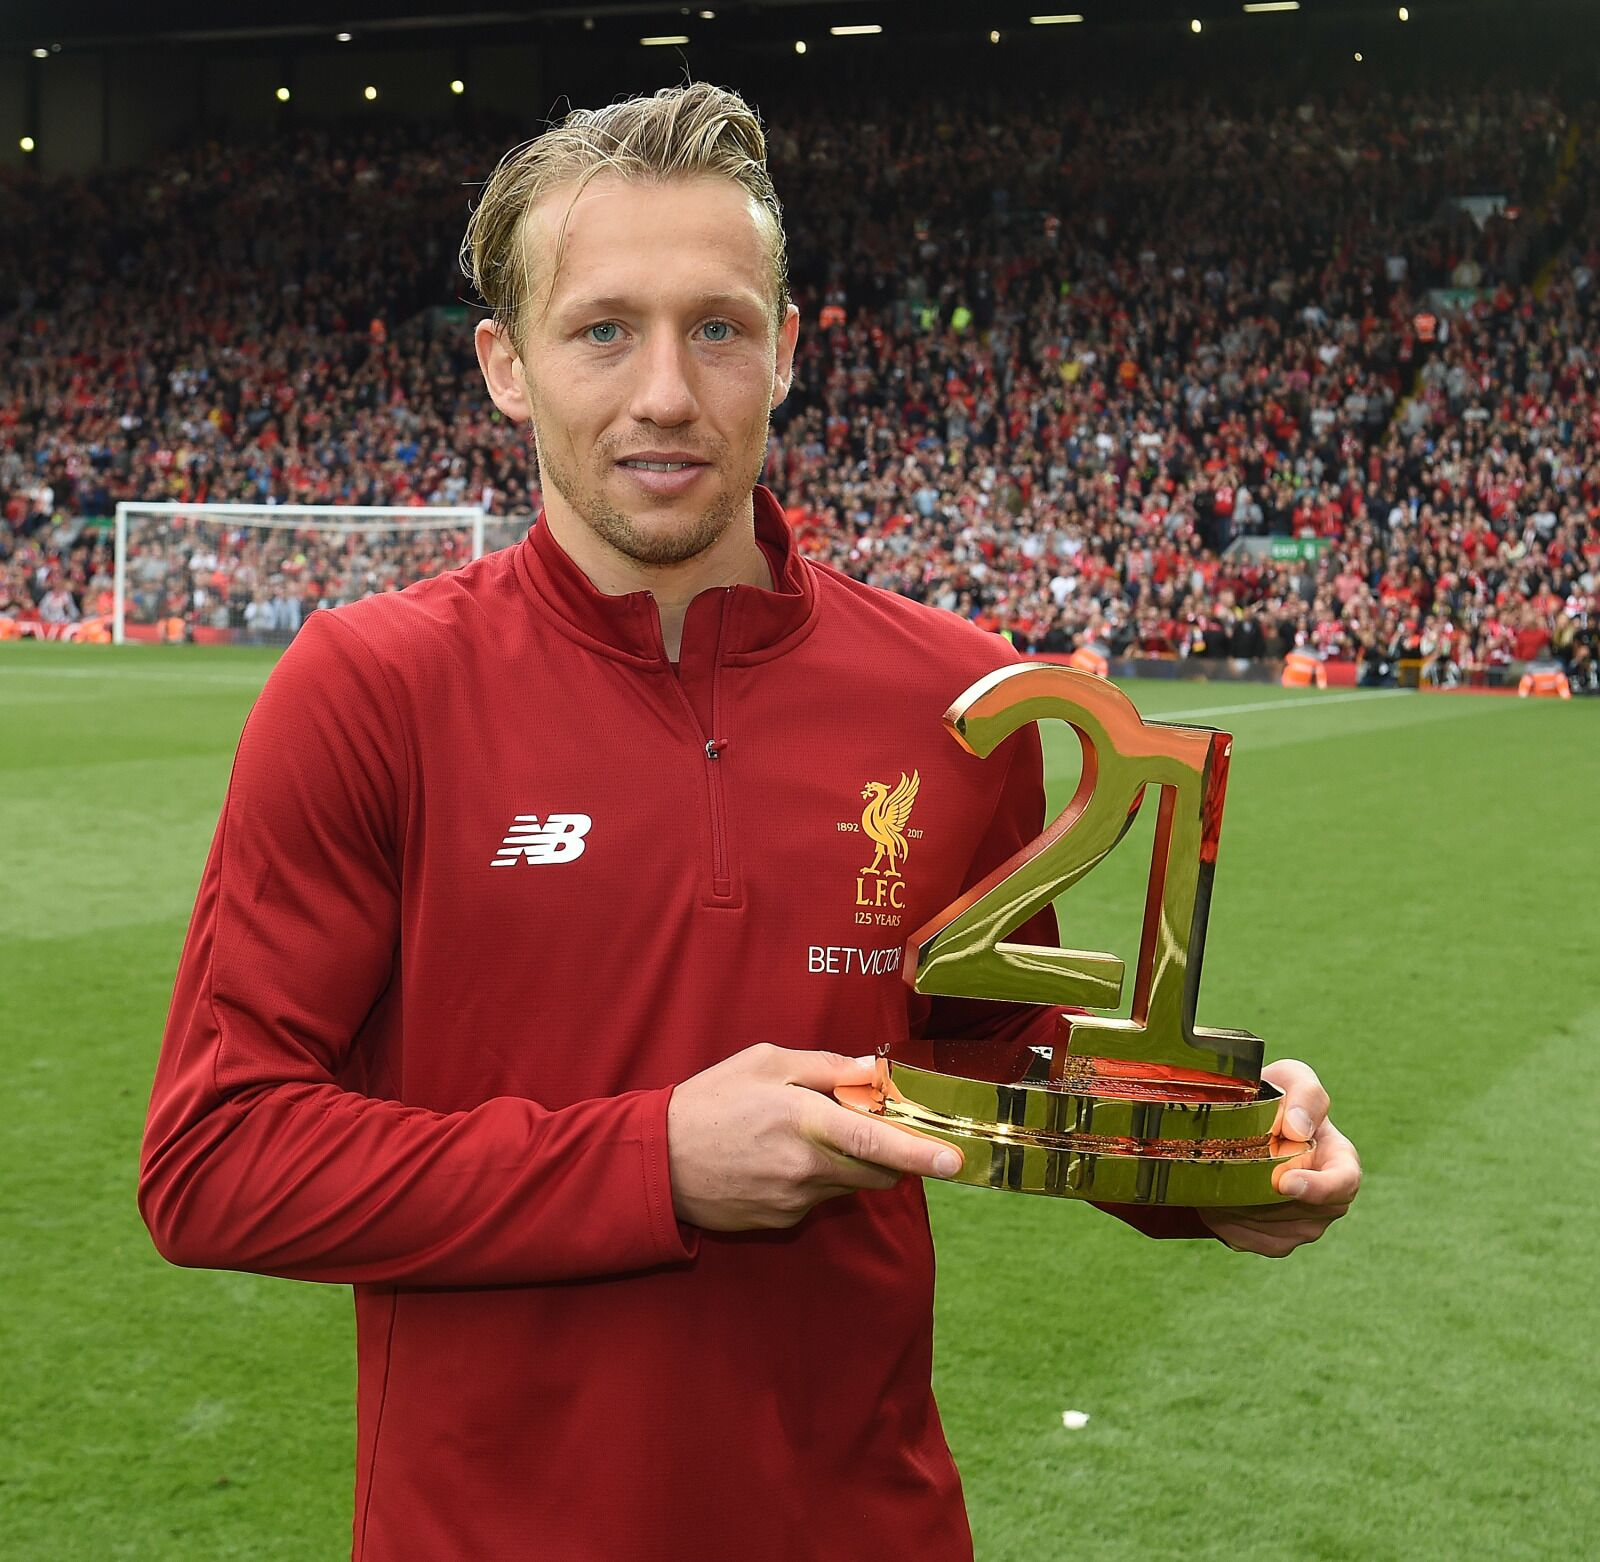 Liverpool fans help give Lucas Leiva Player of the Year award at Lazio